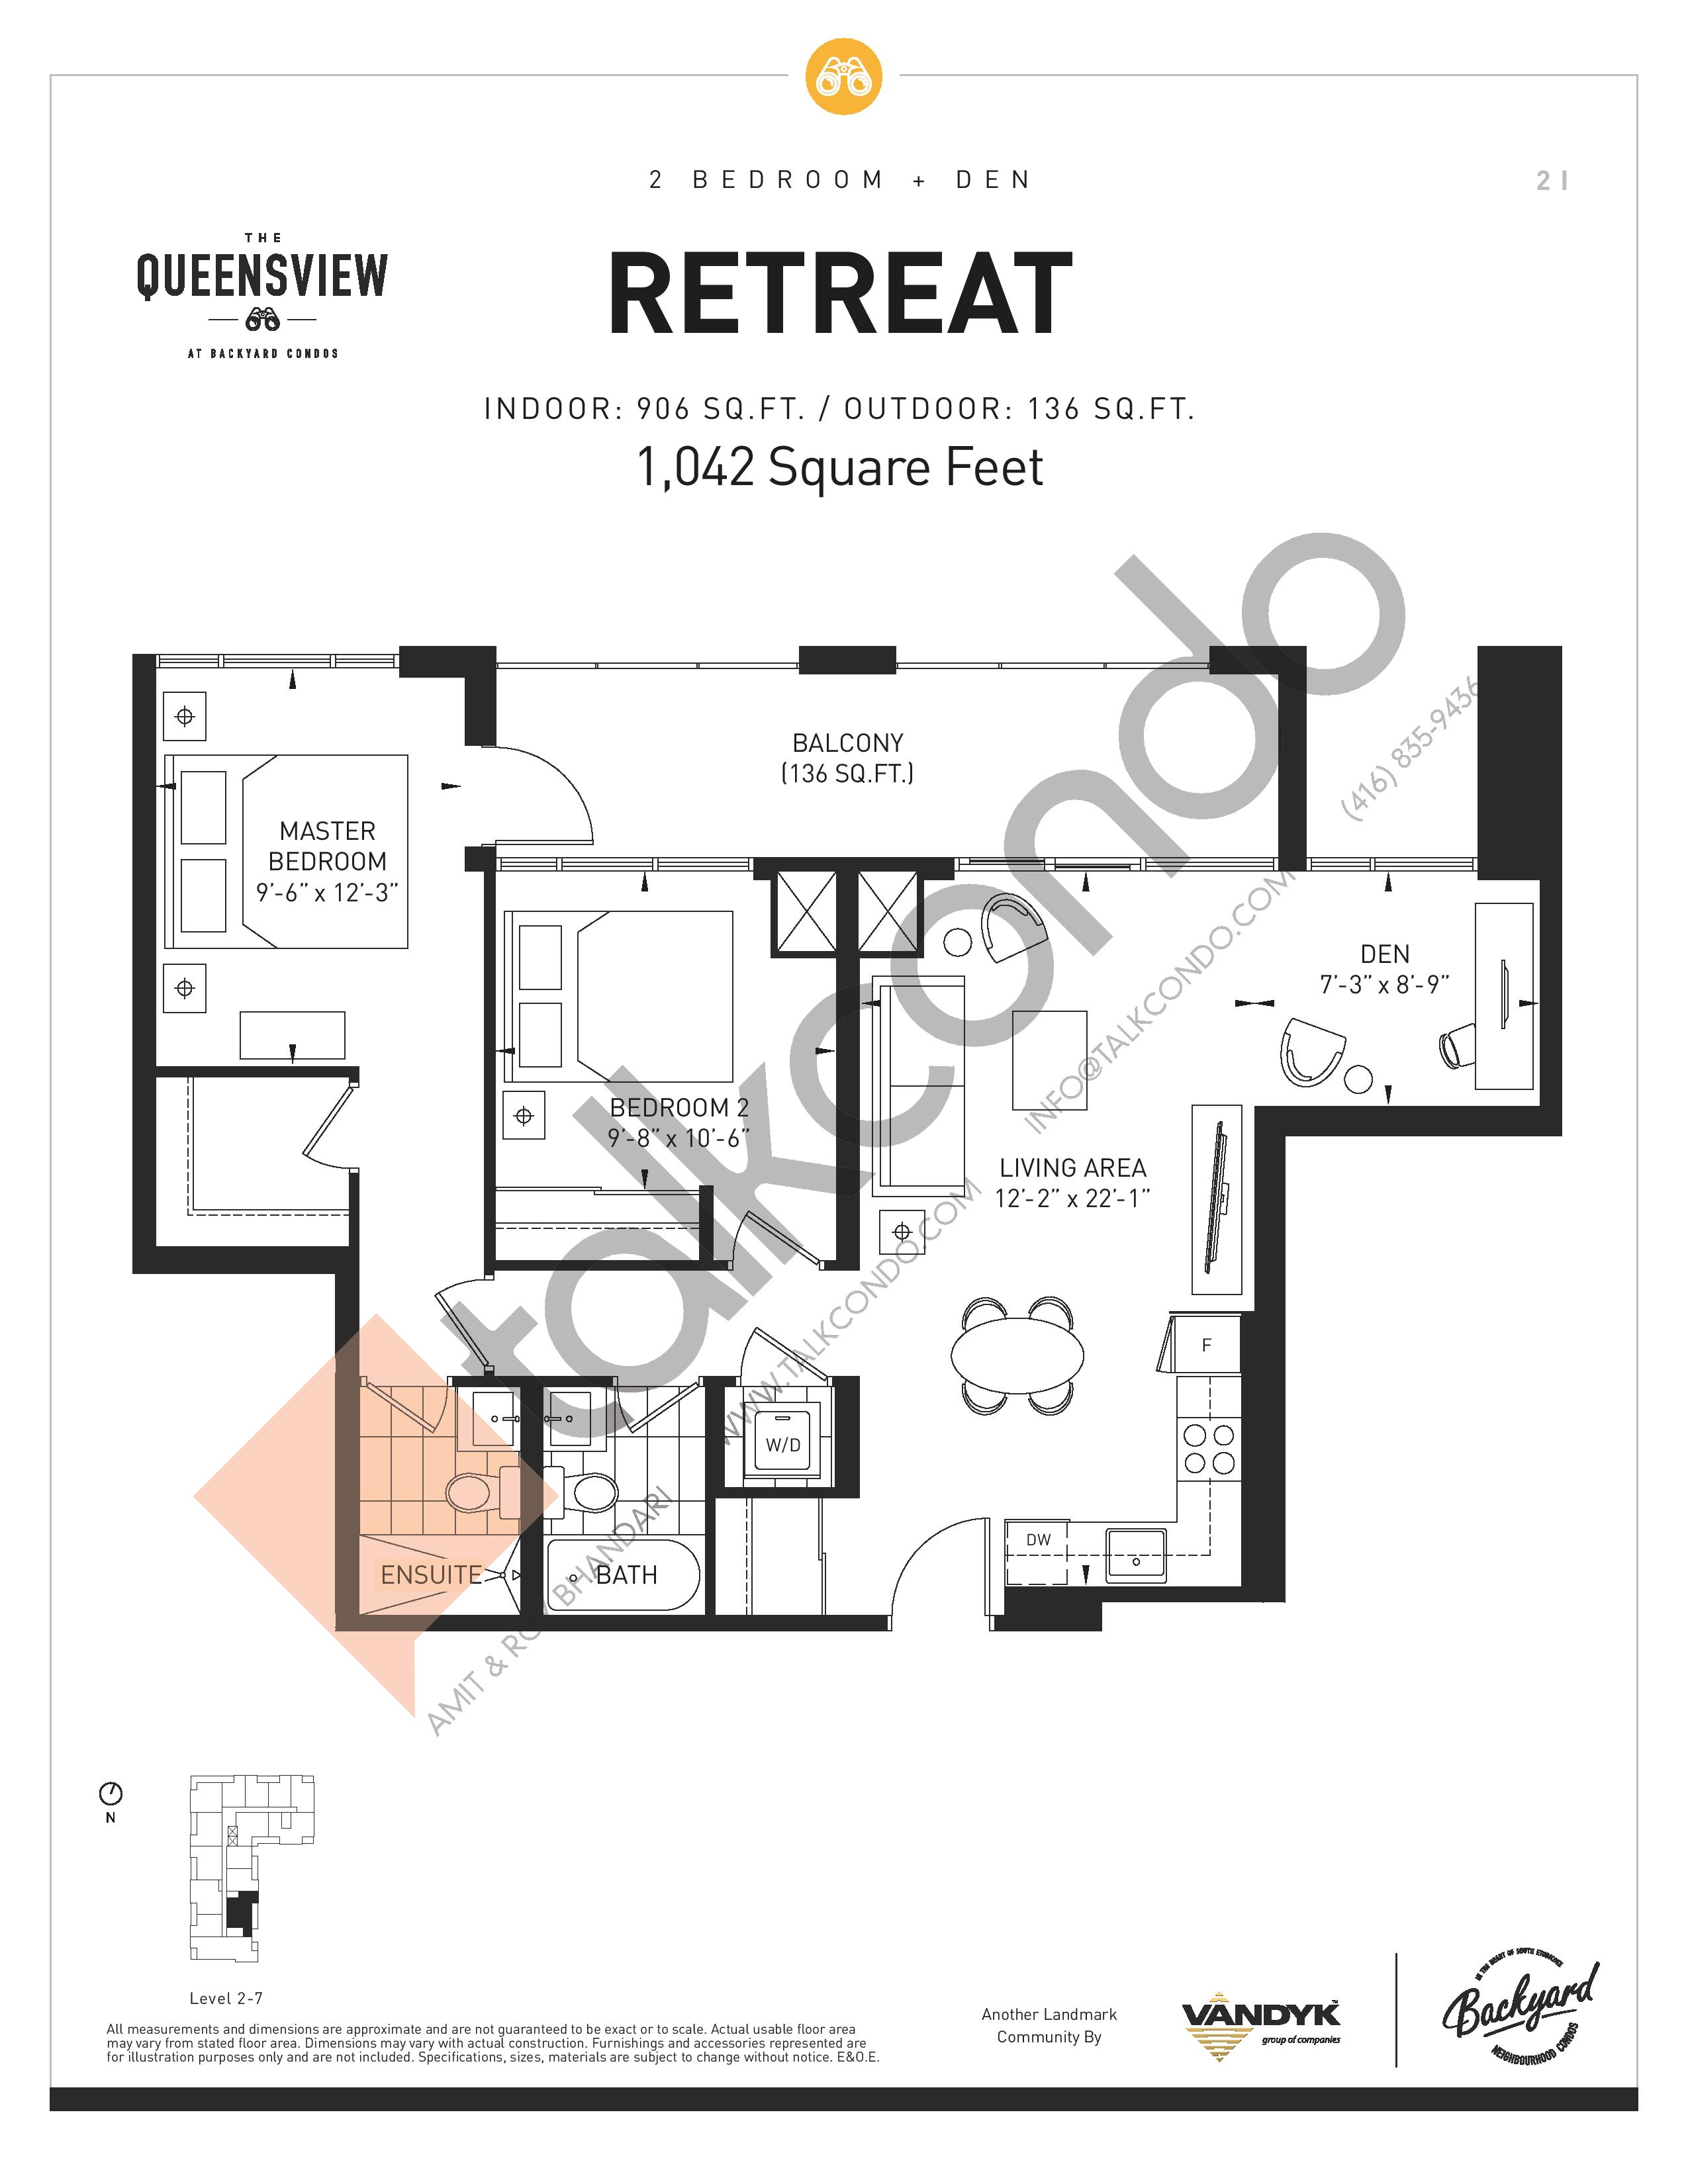 Retreat Floor Plan at The Queensview at Backyard Condos - 906 sq.ft